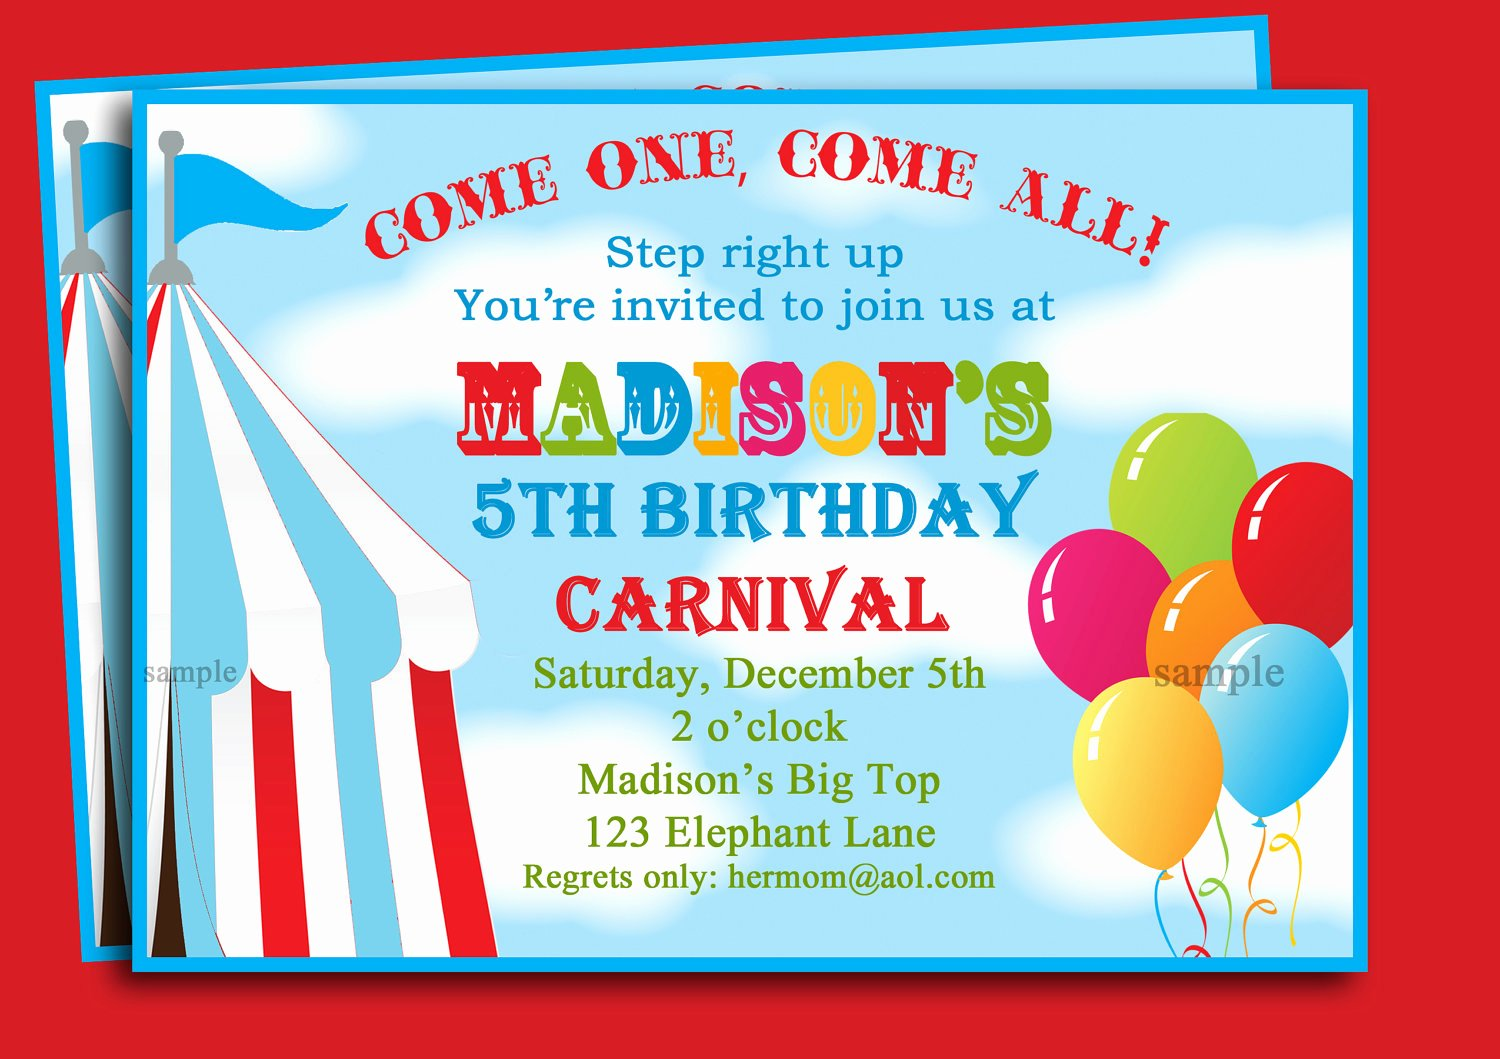 Carnival theme Party Invitations Best Of Free Printable Carnival Birthday Party Invitations